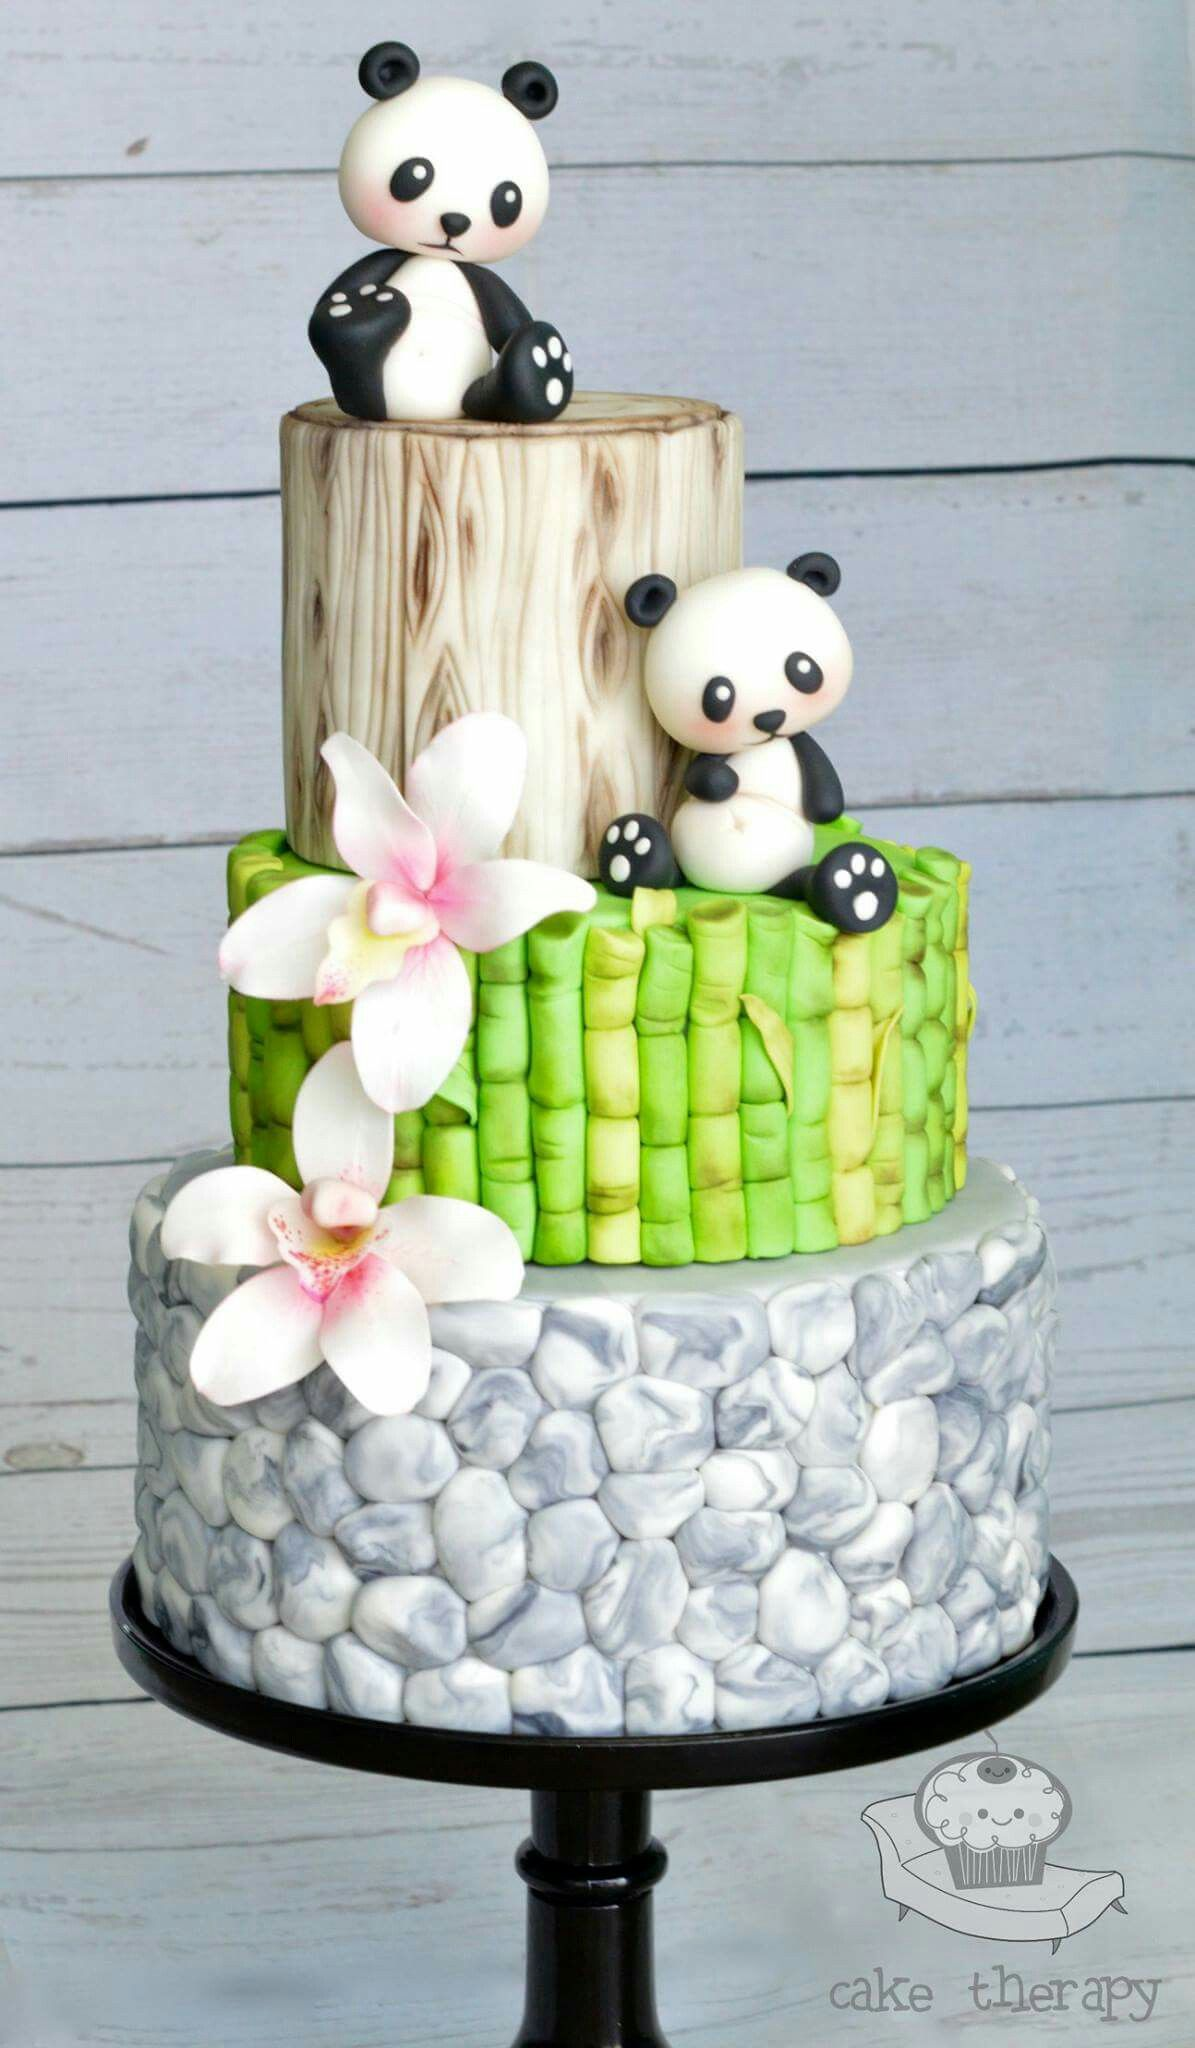 Natalie s creative cakes animal cakes - Find This Pin And More On Amazing Cakes